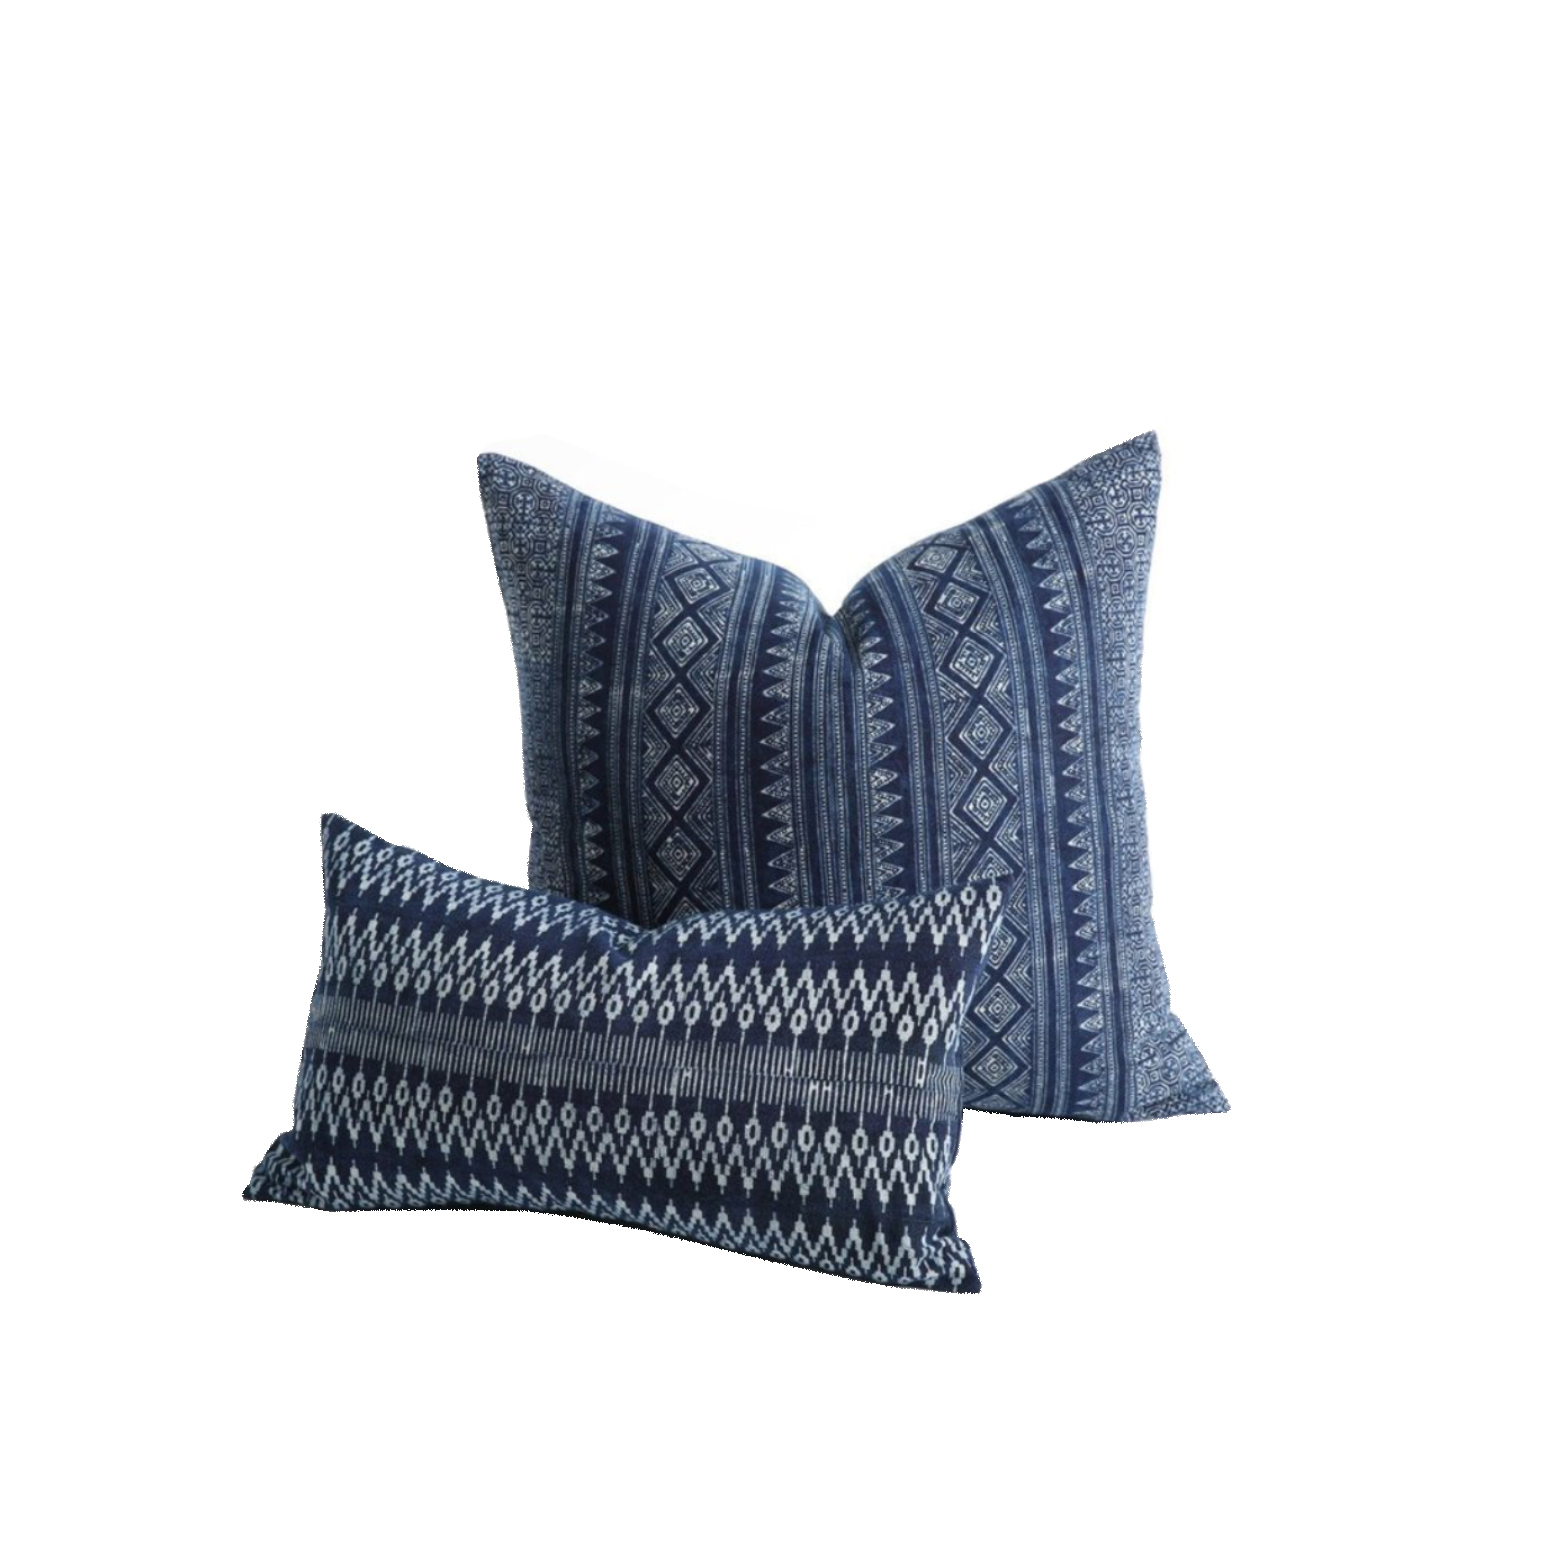 Shop_Blue patterned cushions.jpg